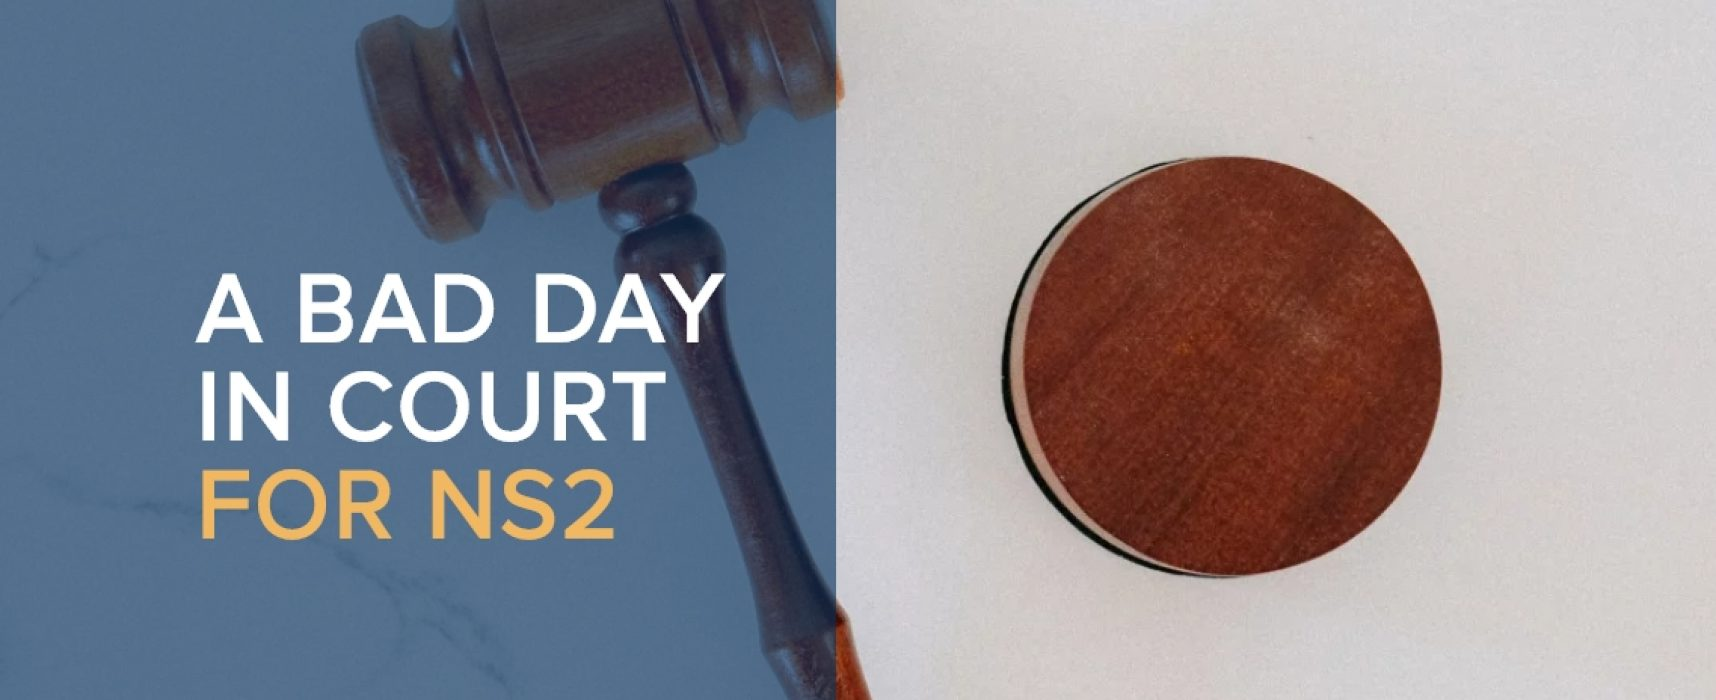 A bad day in court for NS2: litigation, disinformation, and Russia's energy weapon